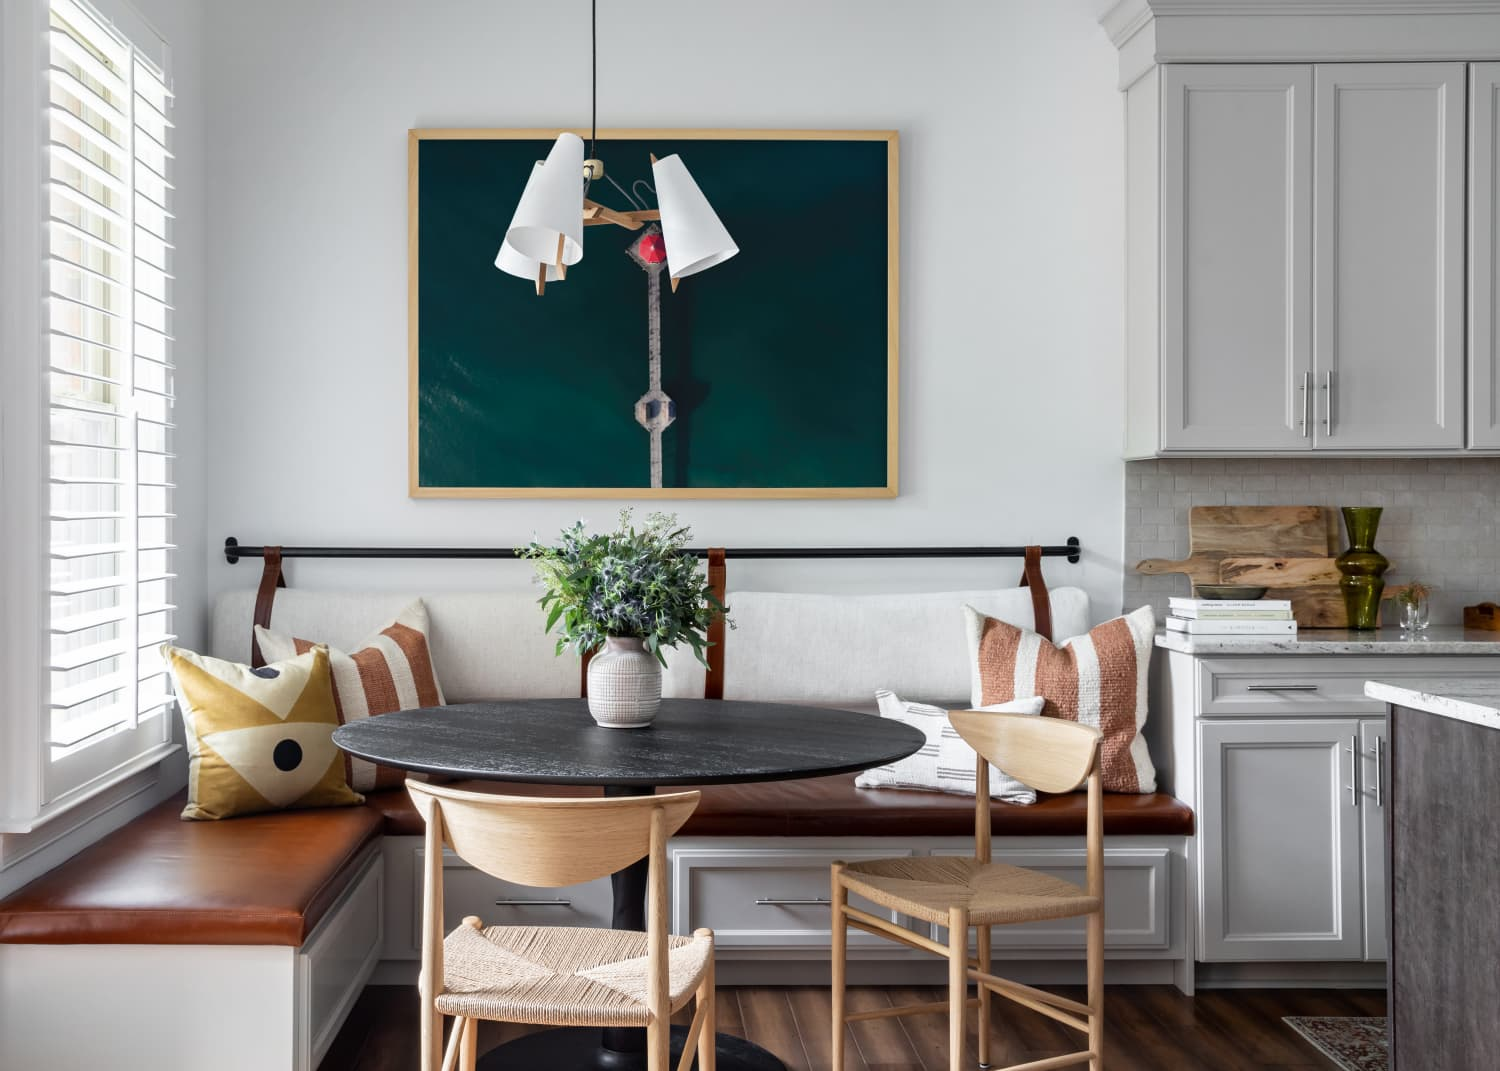 The Most-Requested Home Upgrades in 2020, According to Designers and Contractors